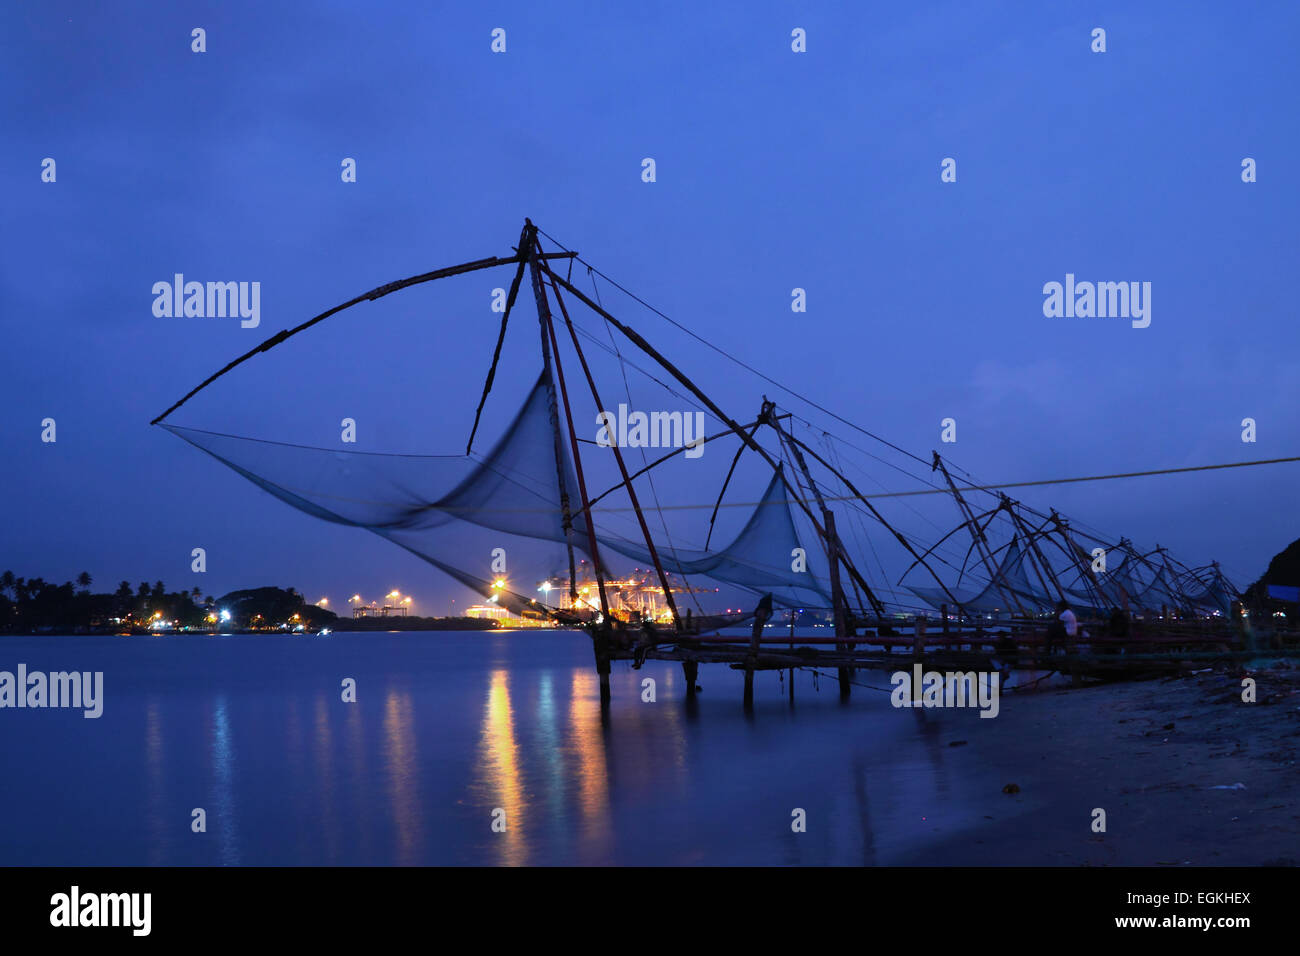 Chinese Fishing nets at Fort Kochi, Kerala, South India at evening blue hour with Vallarpadom Container Terminal - Stock Image